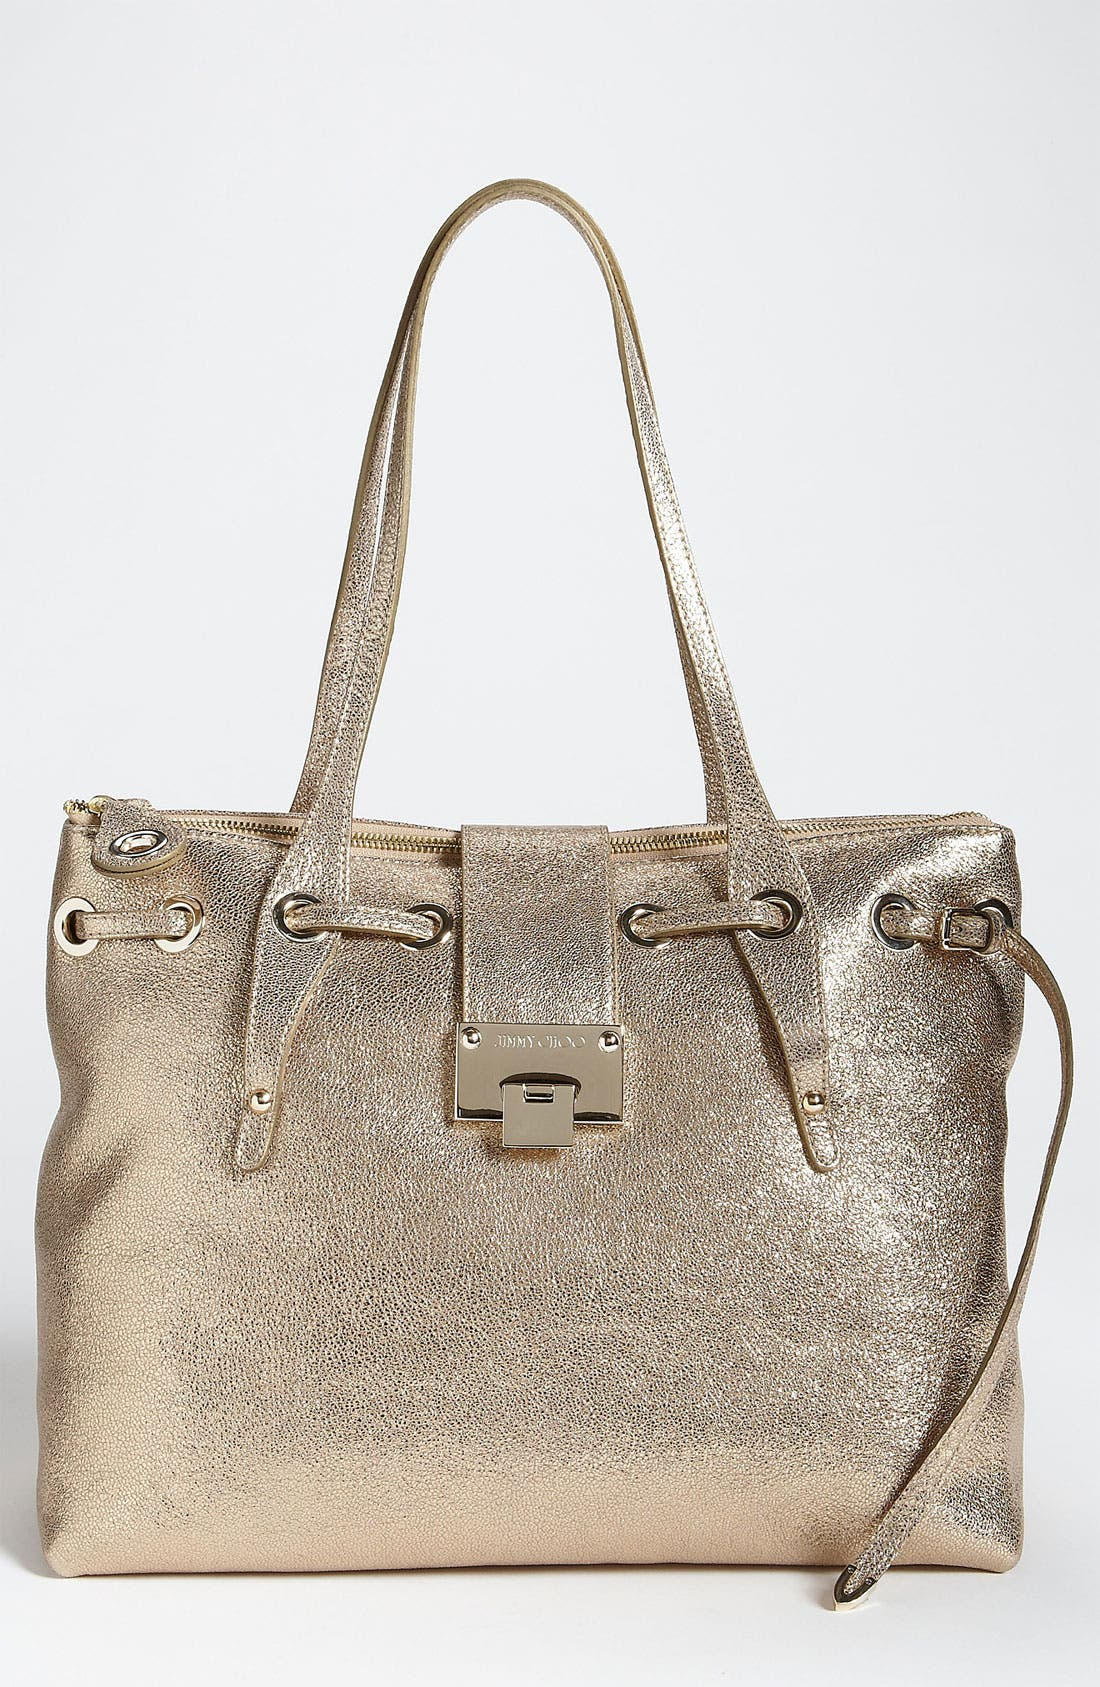 Main Image - Jimmy Choo 'Rhea' Glitter Leather Tote